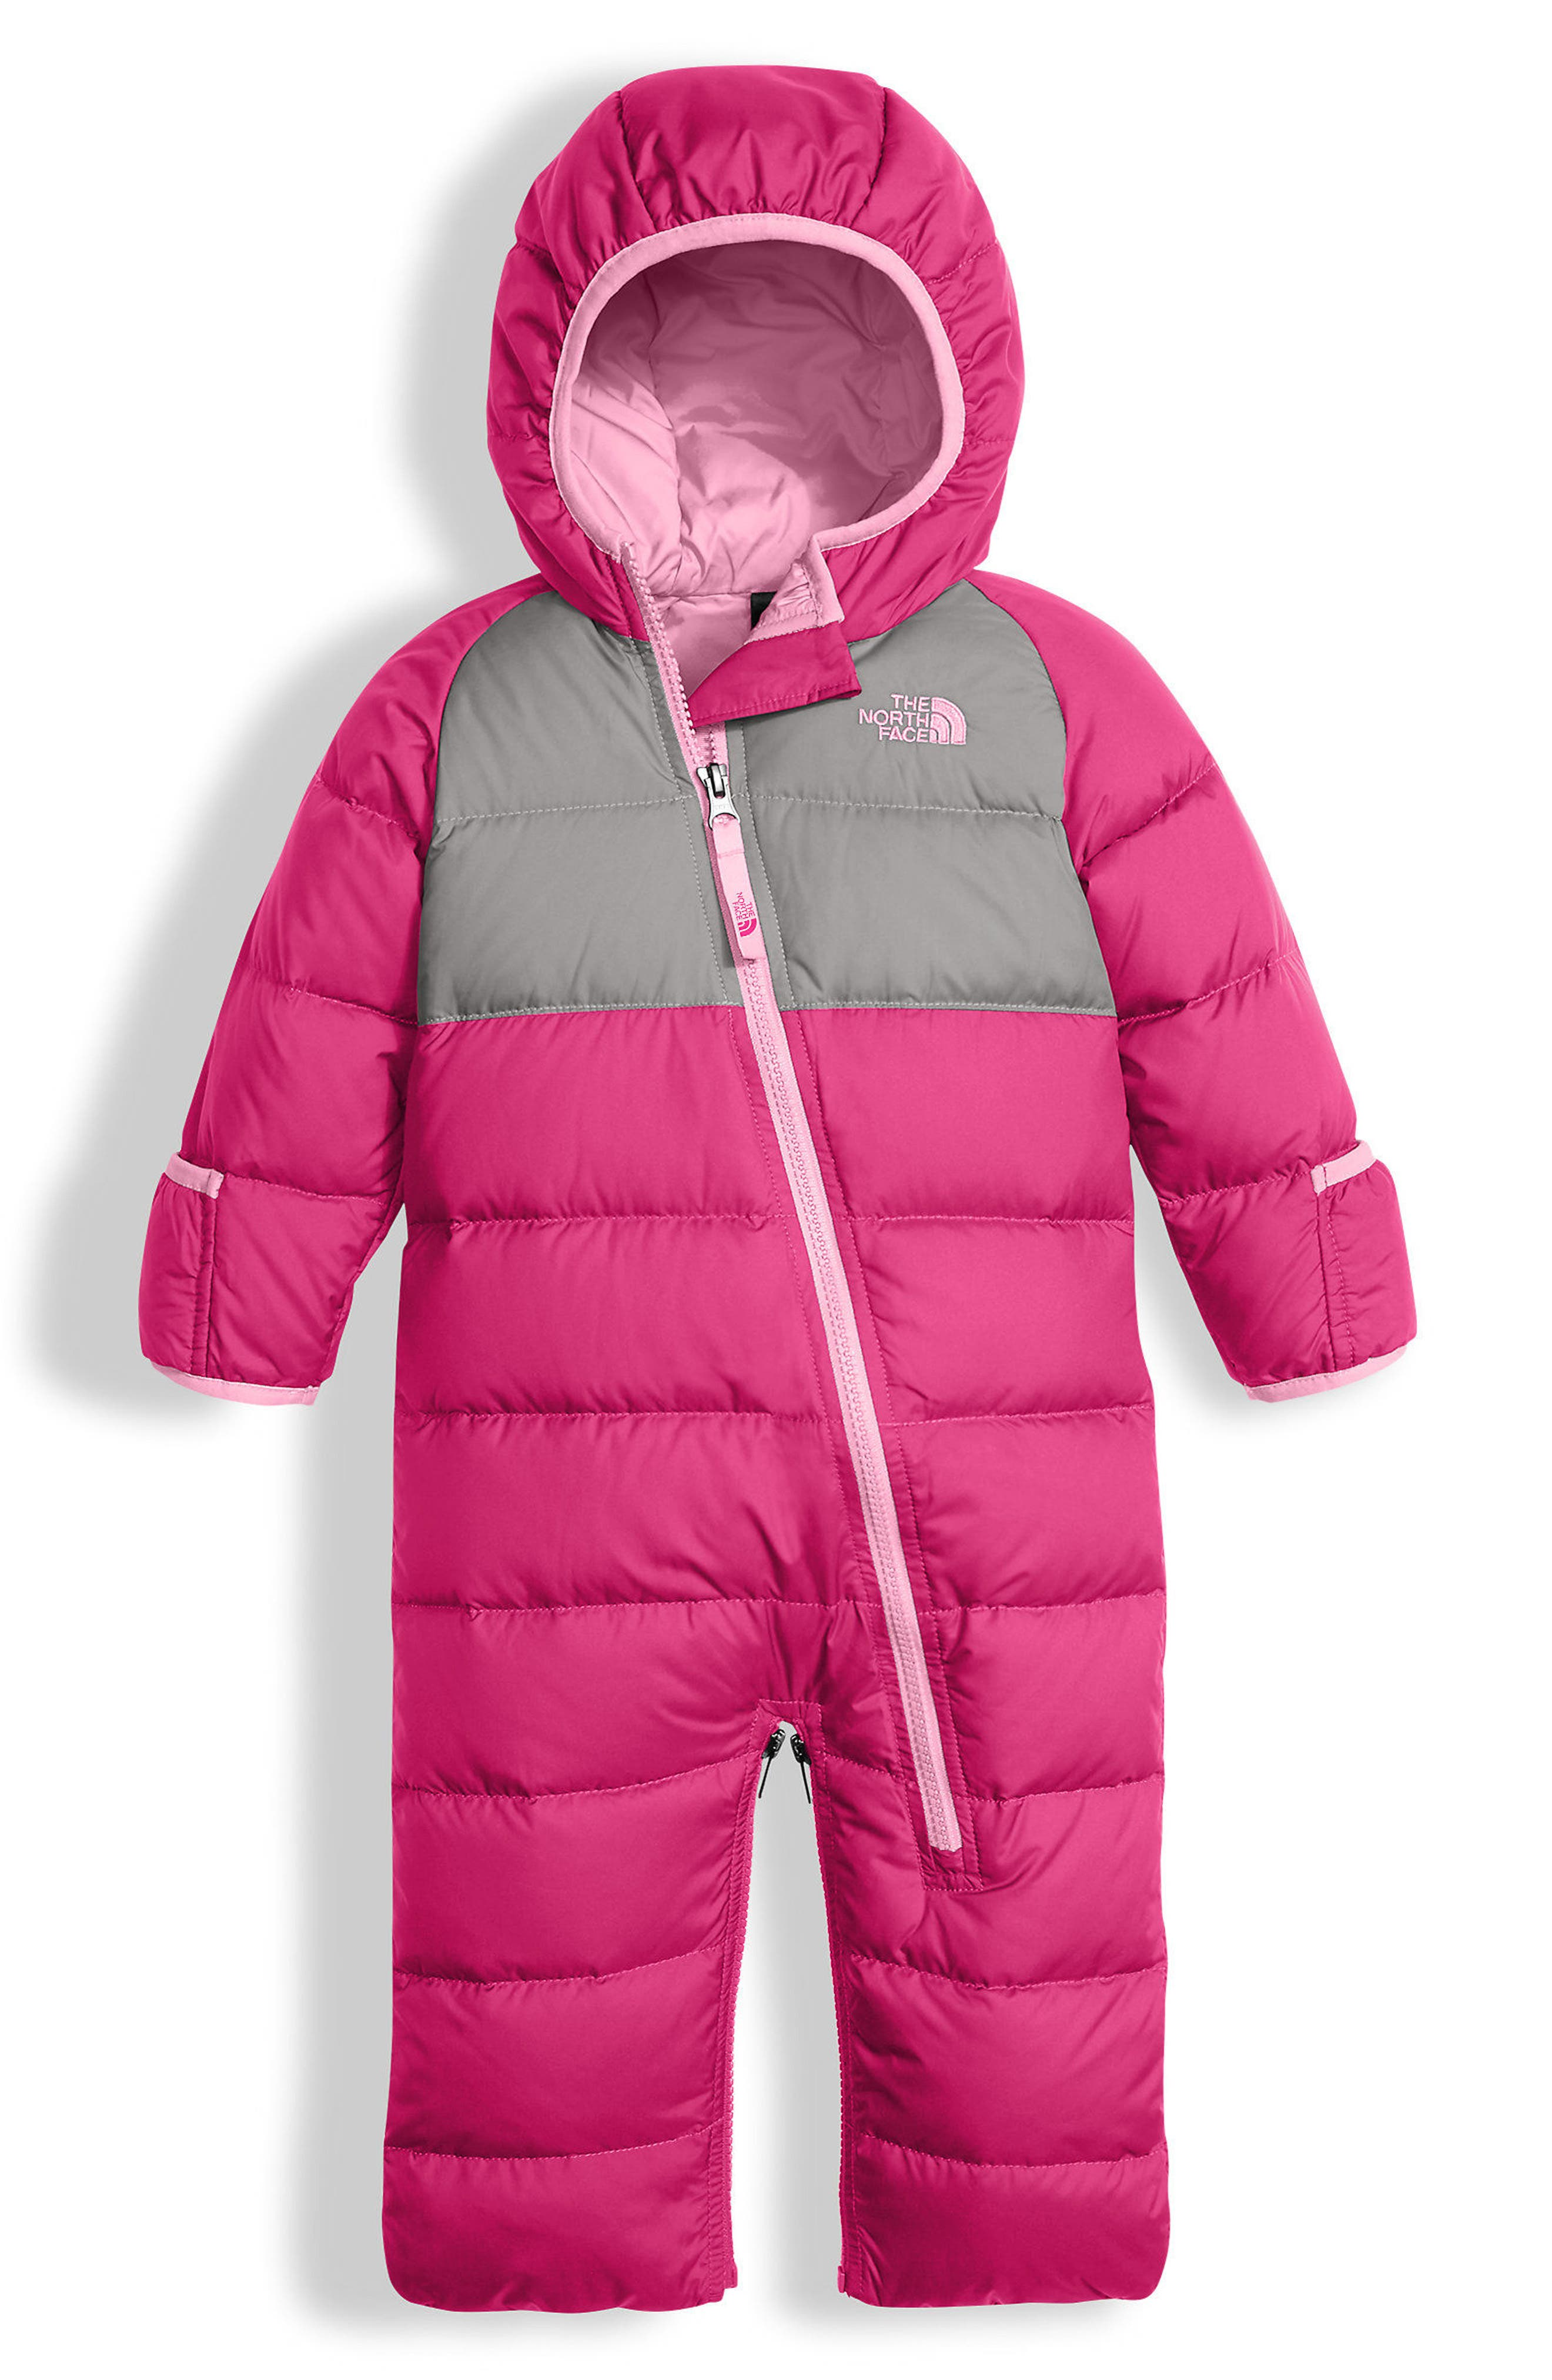 THE NORTH FACE Lil Snuggler Water Resistant Down Bunting